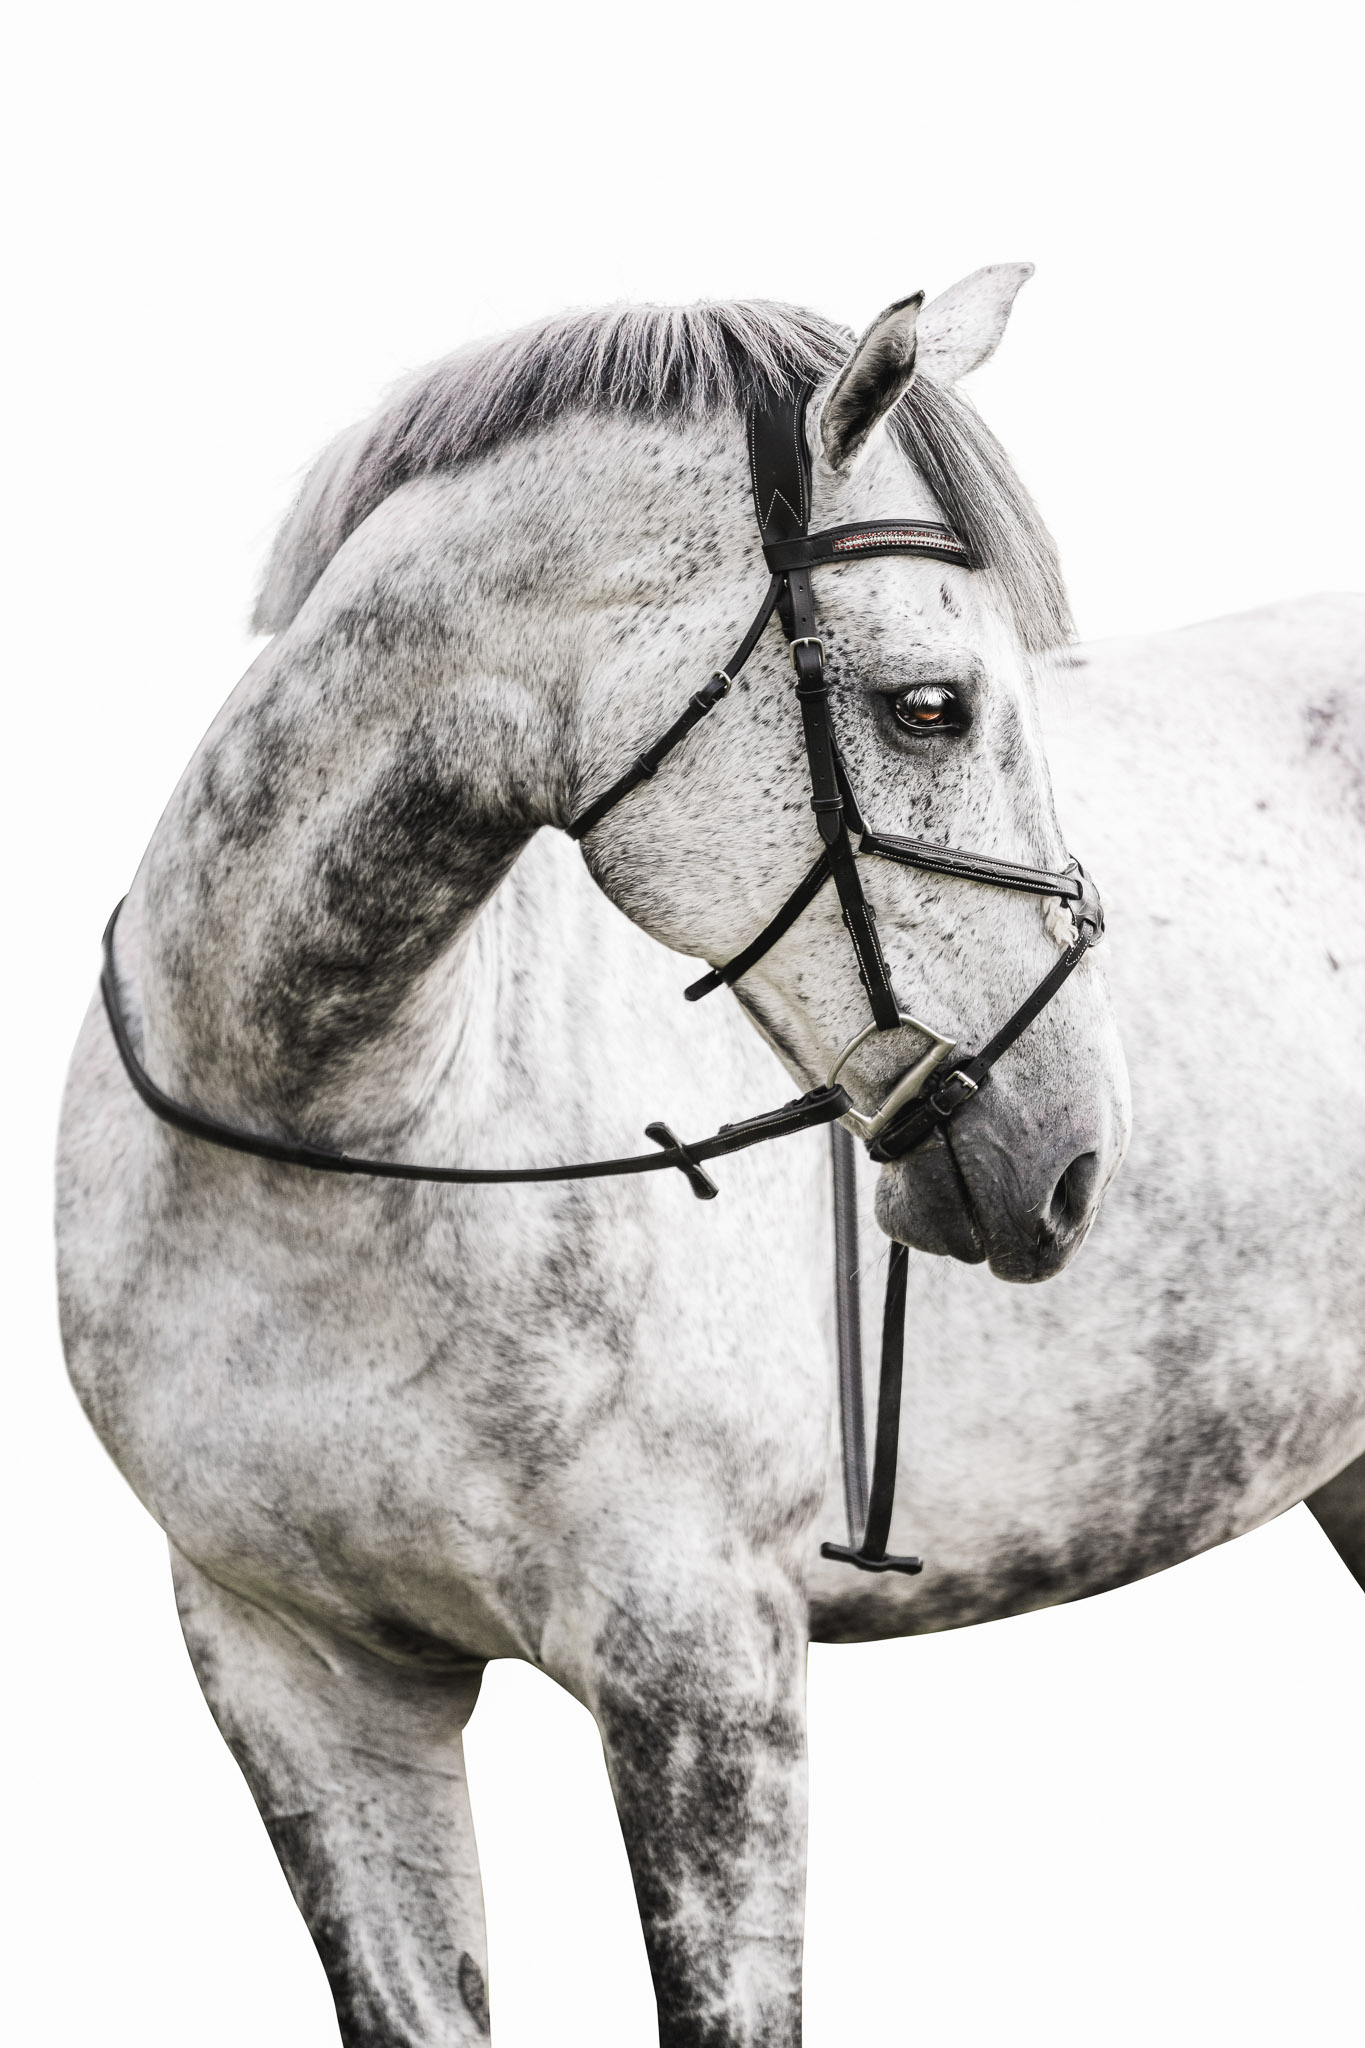 Studio inspired equine photography serving the Athens area horse community with white background or black background equine portraits.